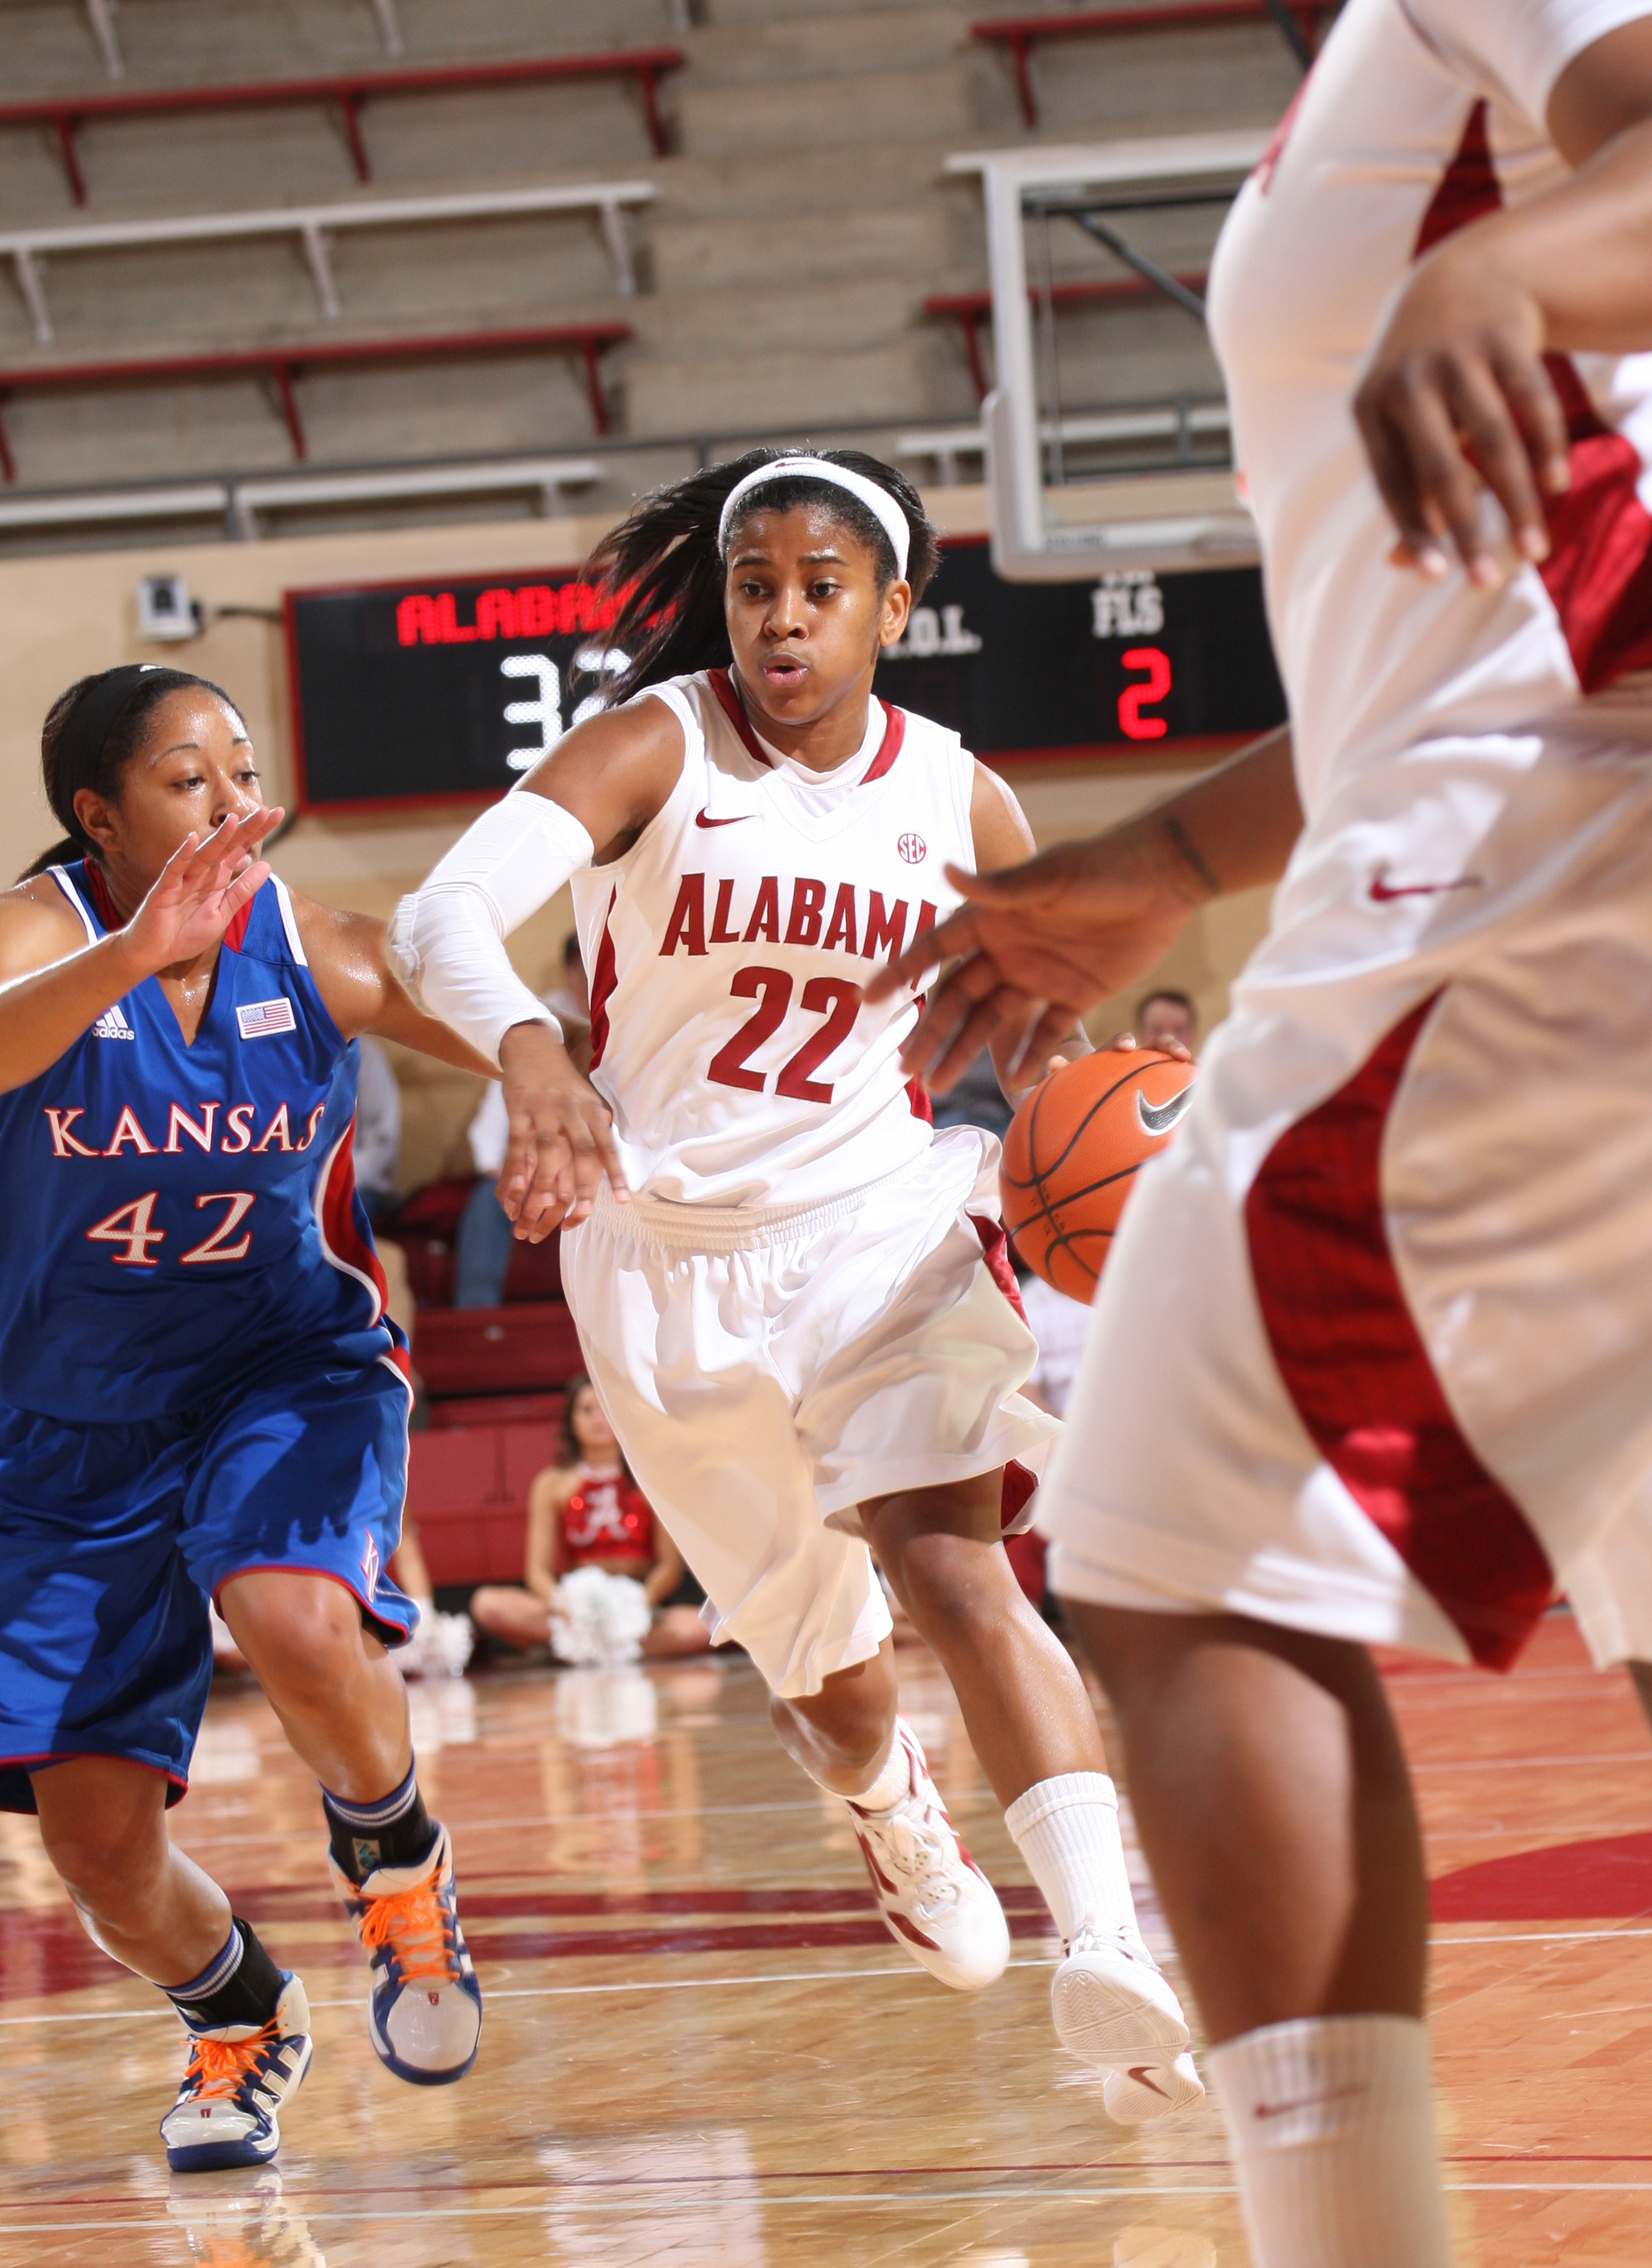 Women's Hoops Knocks off Previously Unbeaten Kansas, 80-76